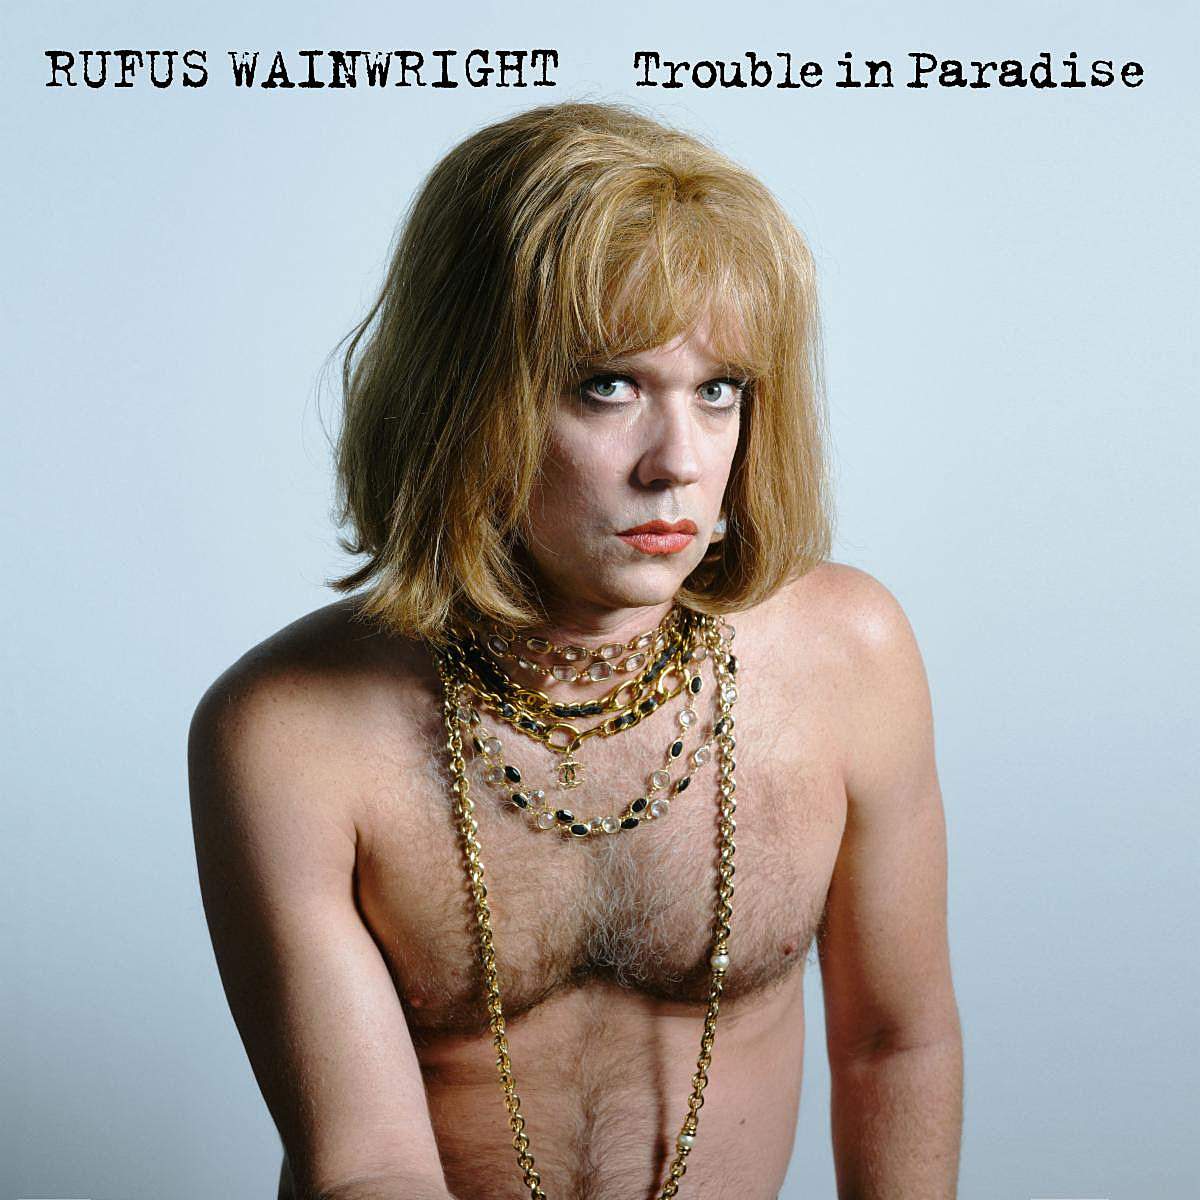 rufus-trouble-in-paradise